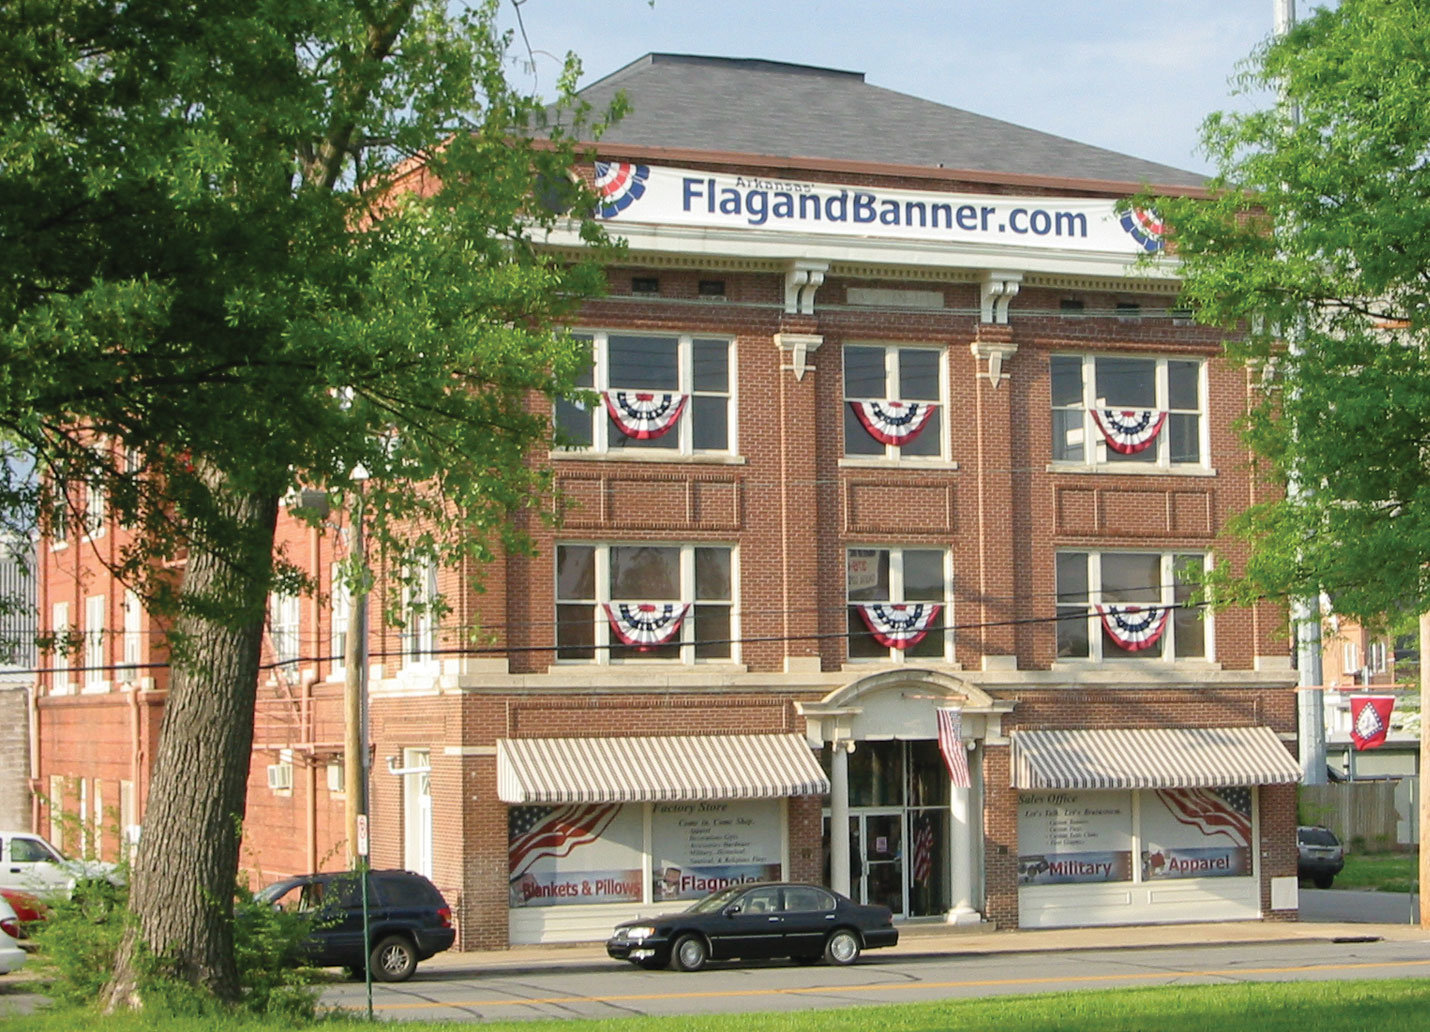 FlagandBanner.com is located at 800 W 9th Street, Little Rock, AR.